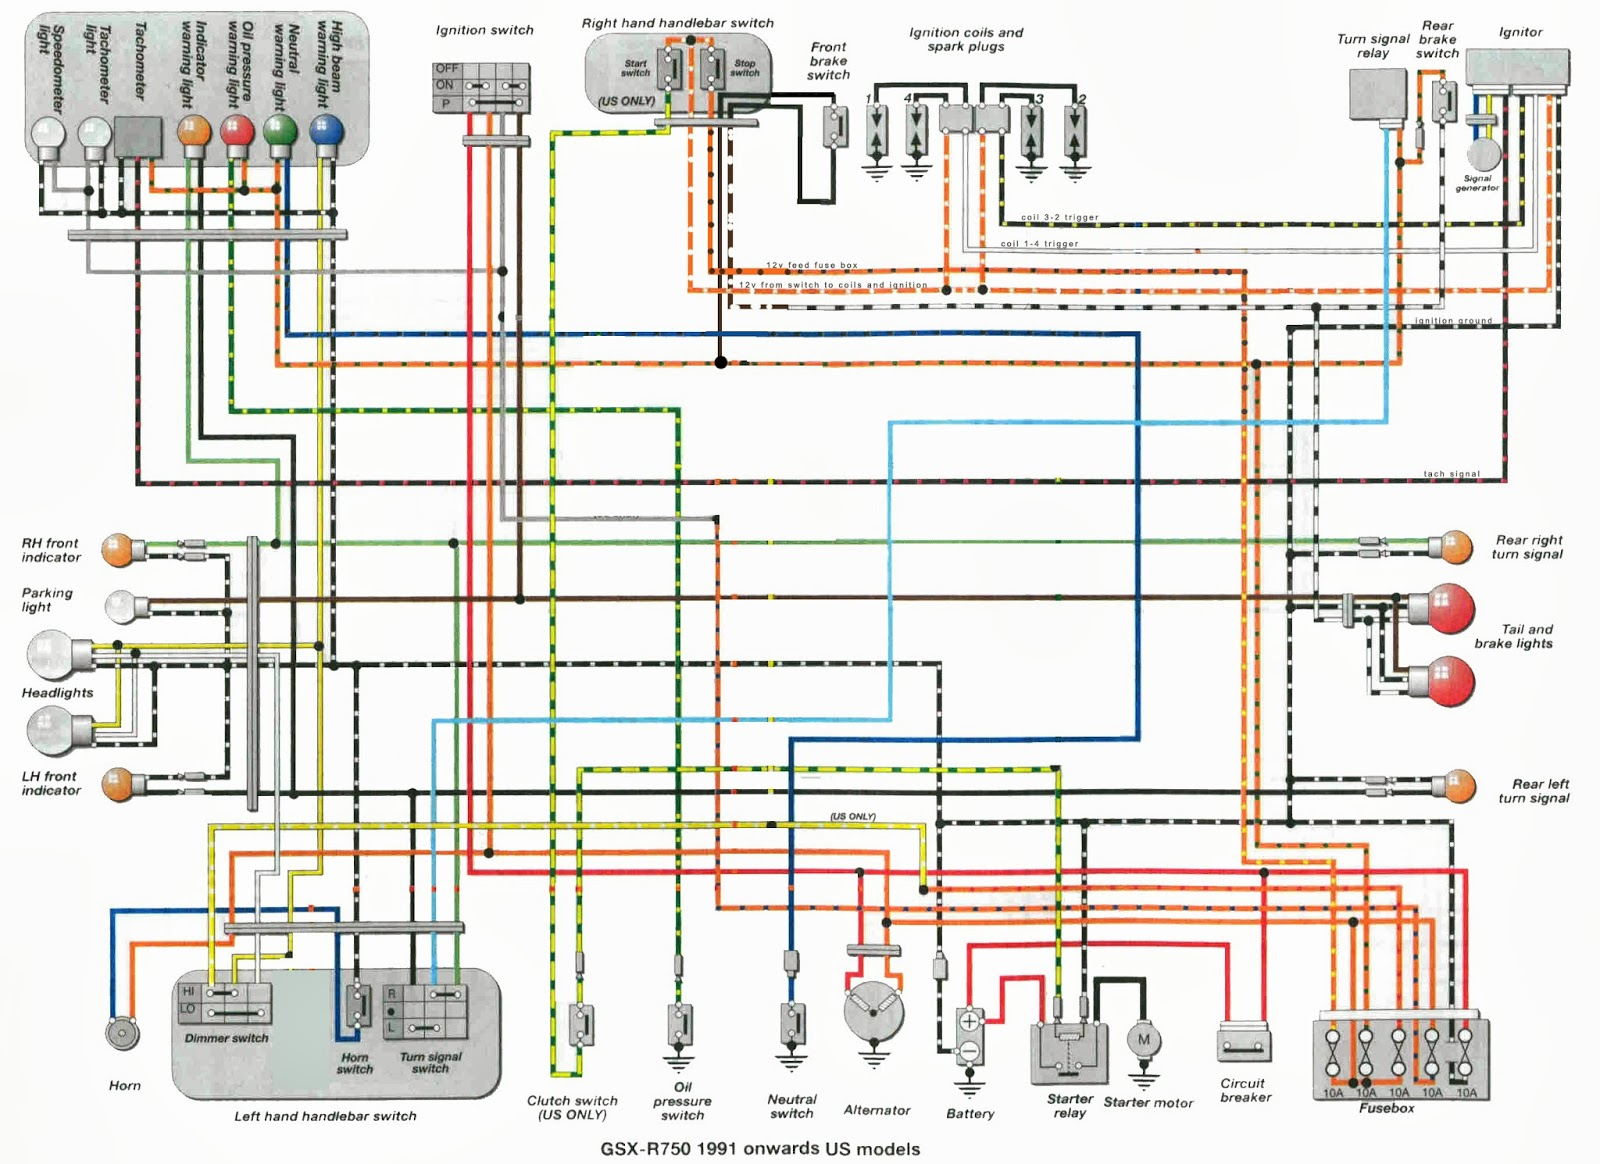 hight resolution of 2004 peterbilt 379 wiring harness diagram 41 wiring diagram images rh cita asia 2005 peterbilt 379